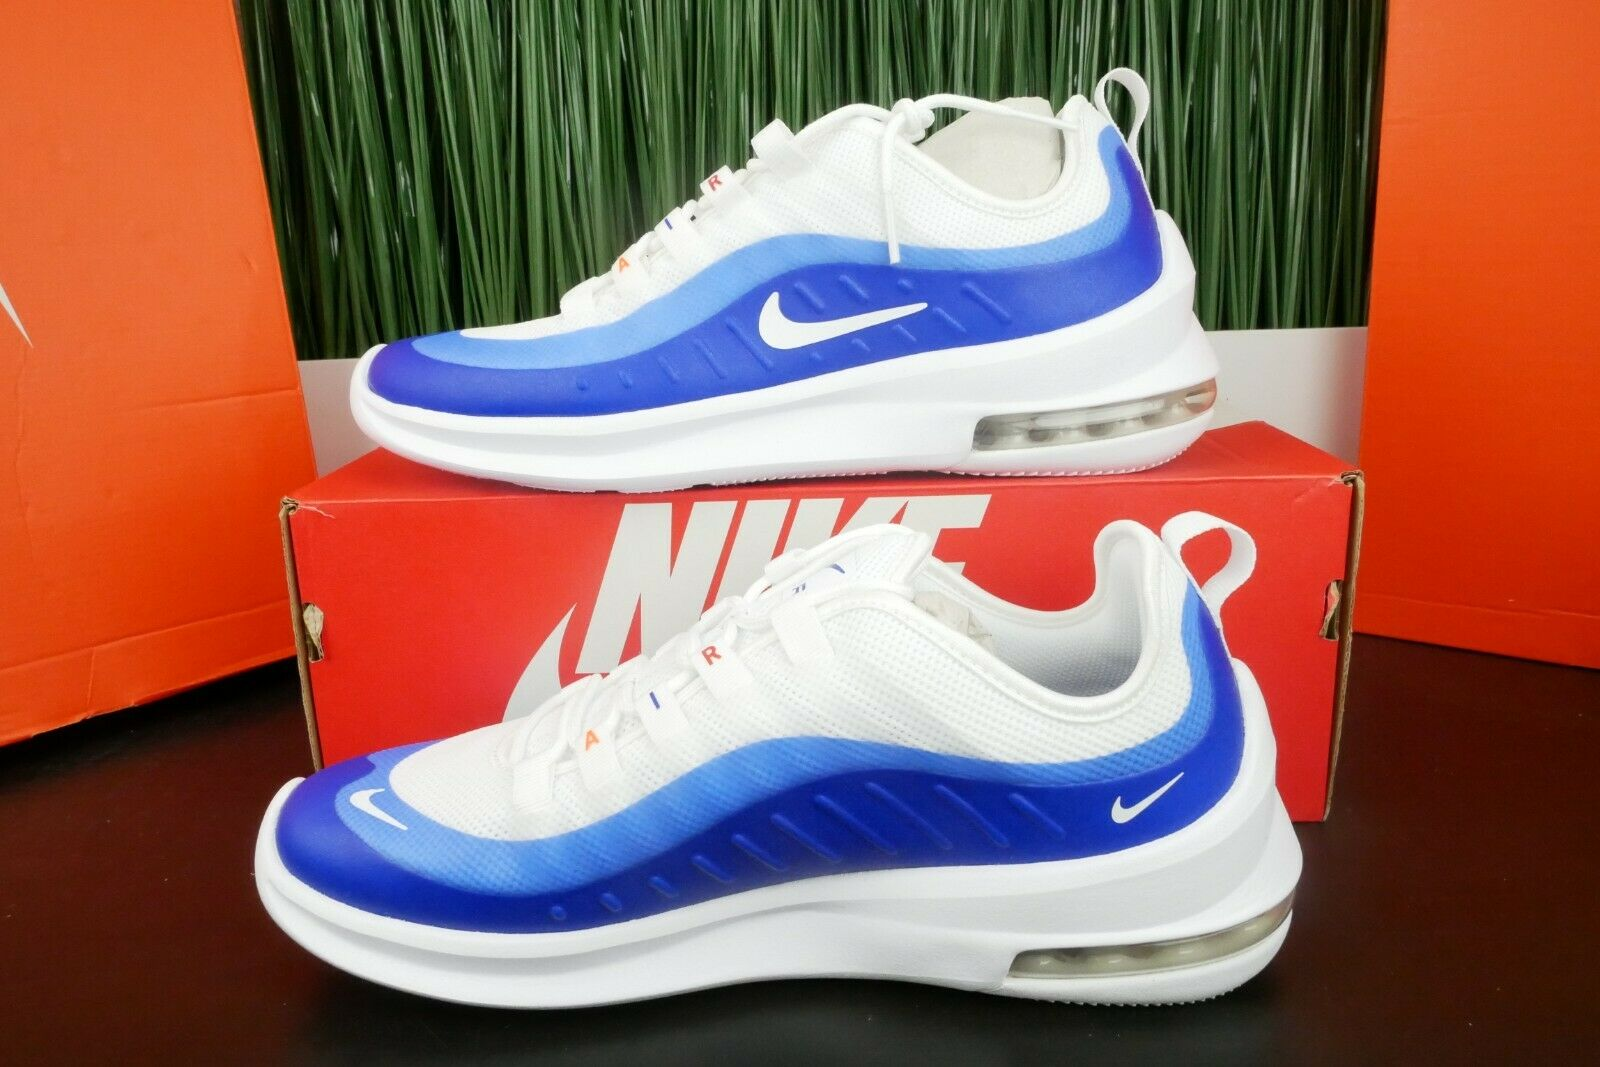 Nike Air Max Axis Premium Racer bluee White Running shoes AA2146-104 Size 8